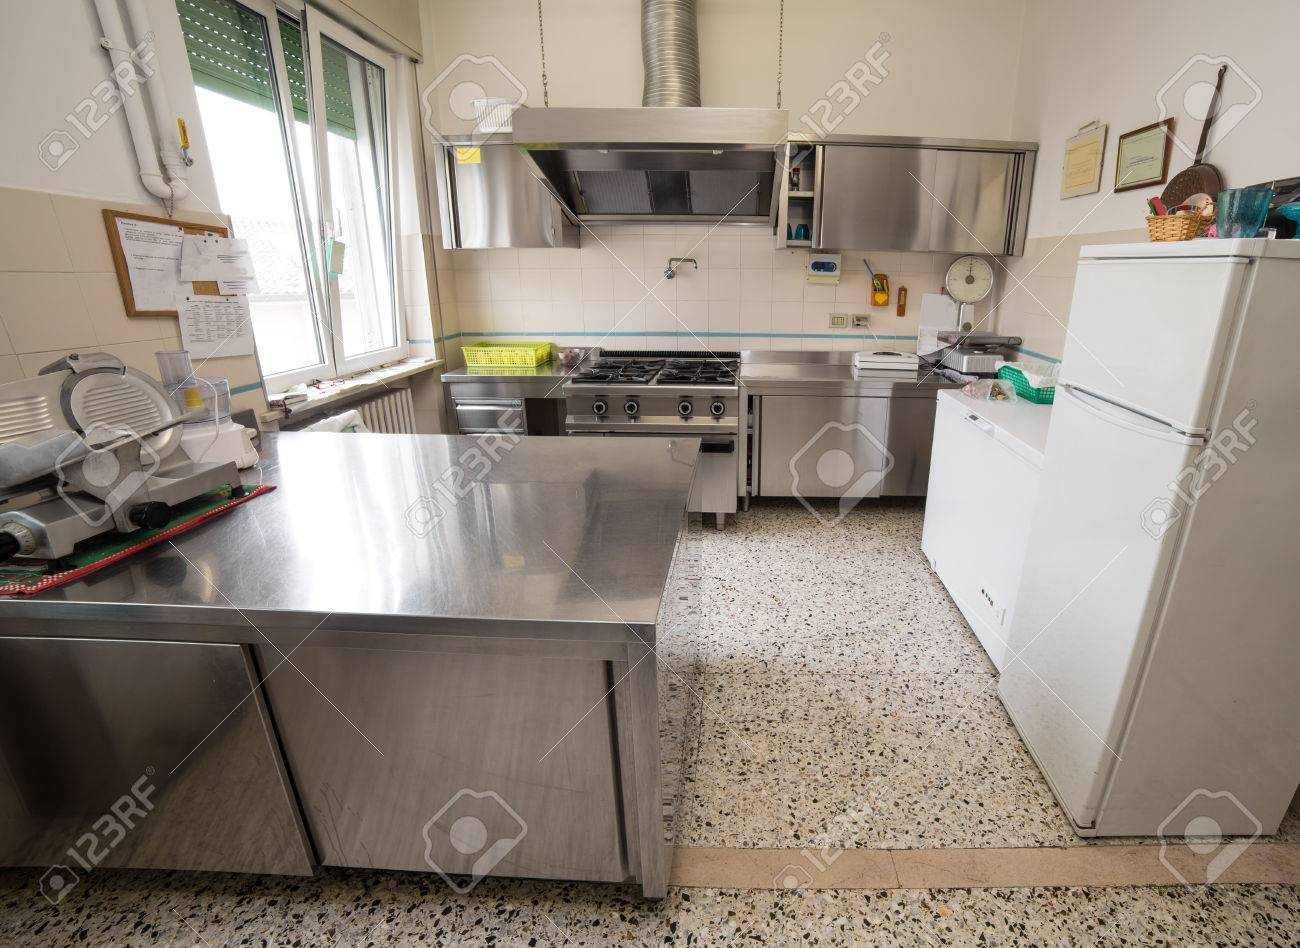 Full Size of Kitchen Stainless Steel Industry With Large Gas Stove And A Meat Küche Industrie Küche